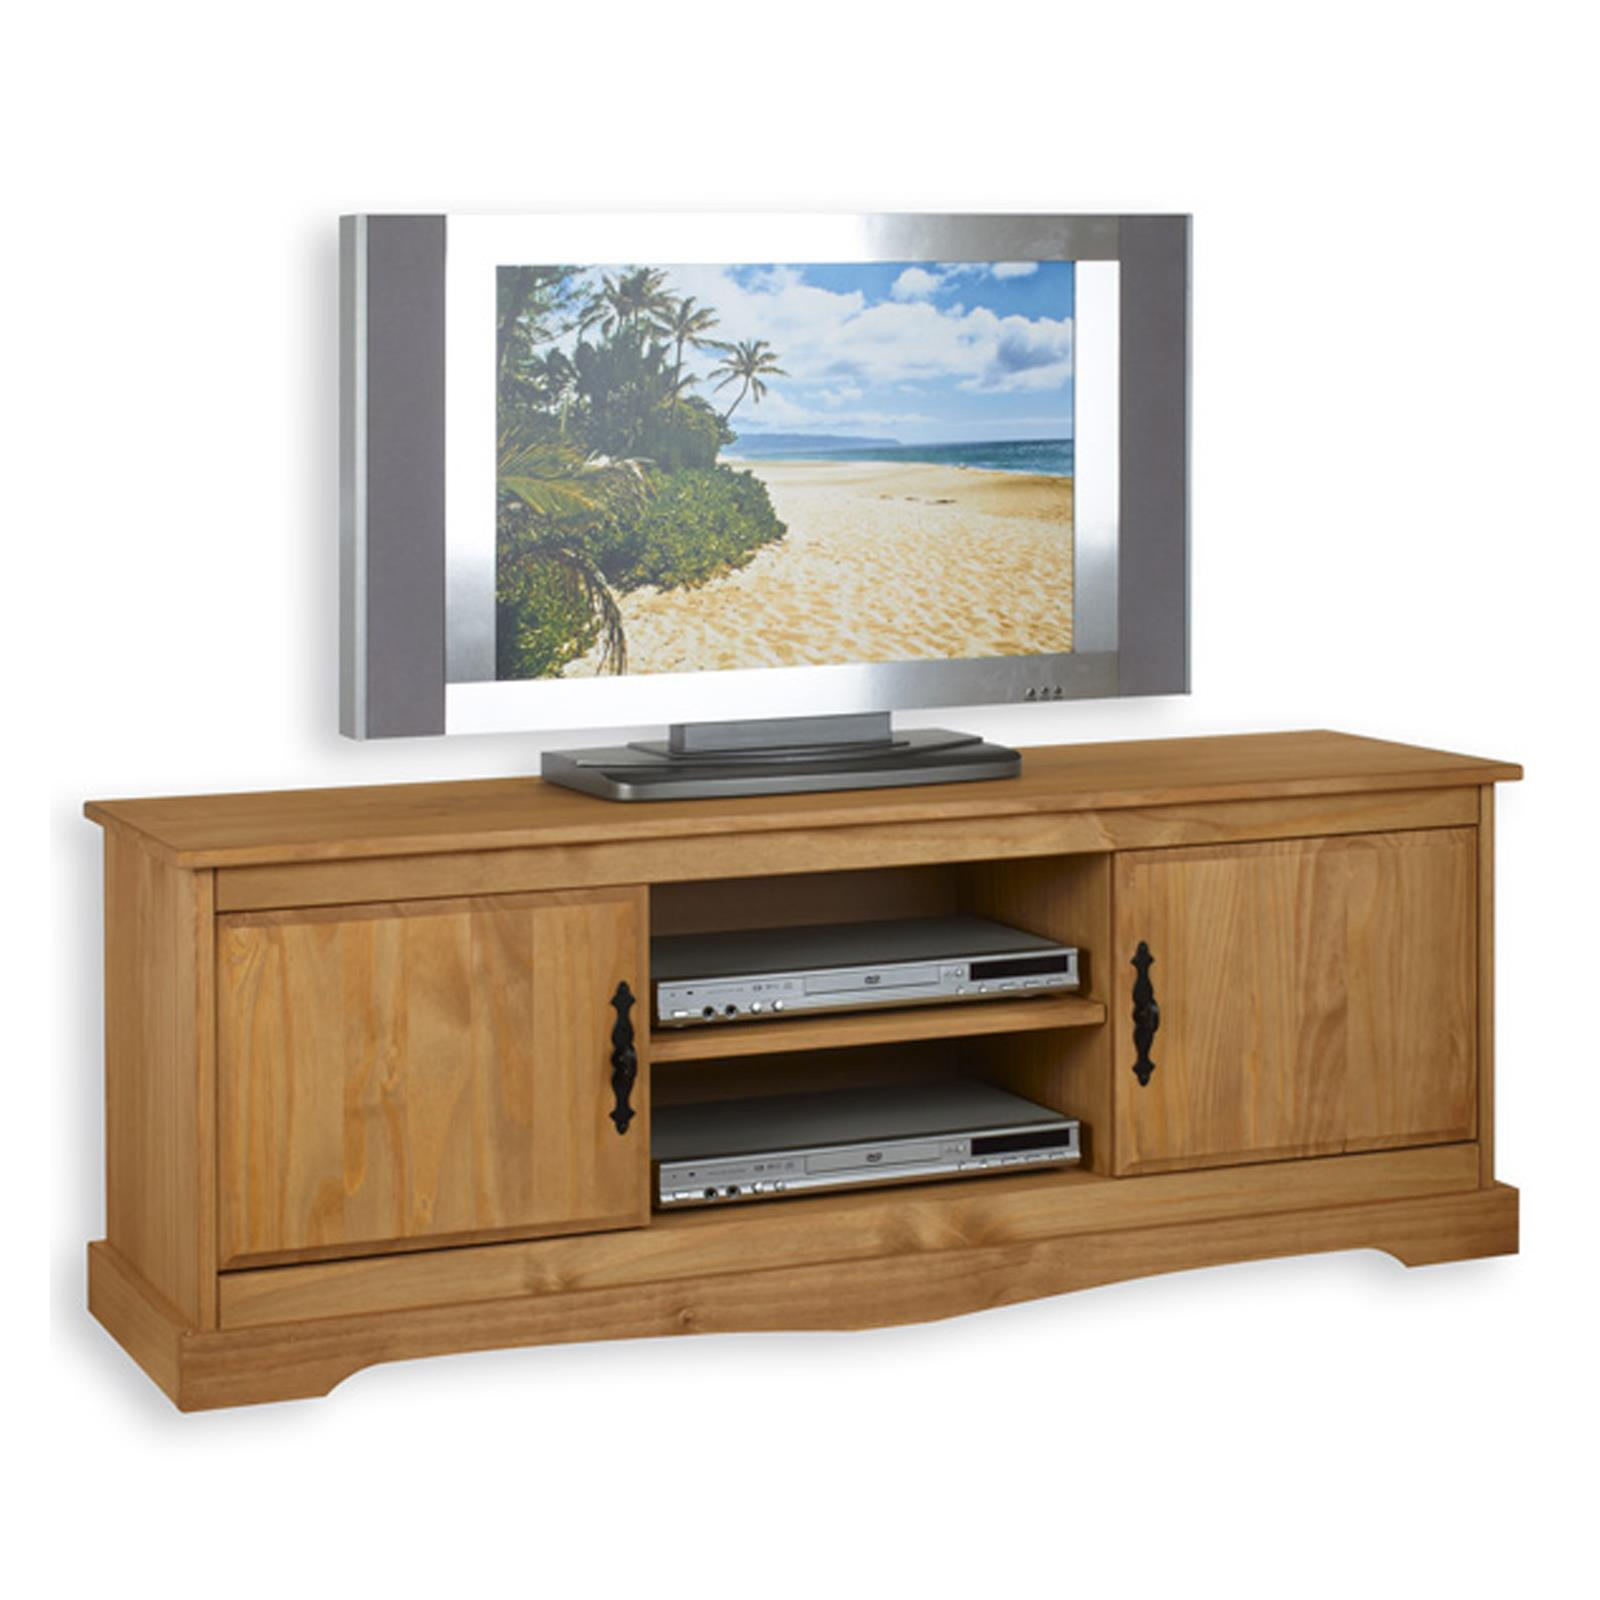 lowboard medienm bel tv m bel tv rack phono m bel kiefer. Black Bedroom Furniture Sets. Home Design Ideas